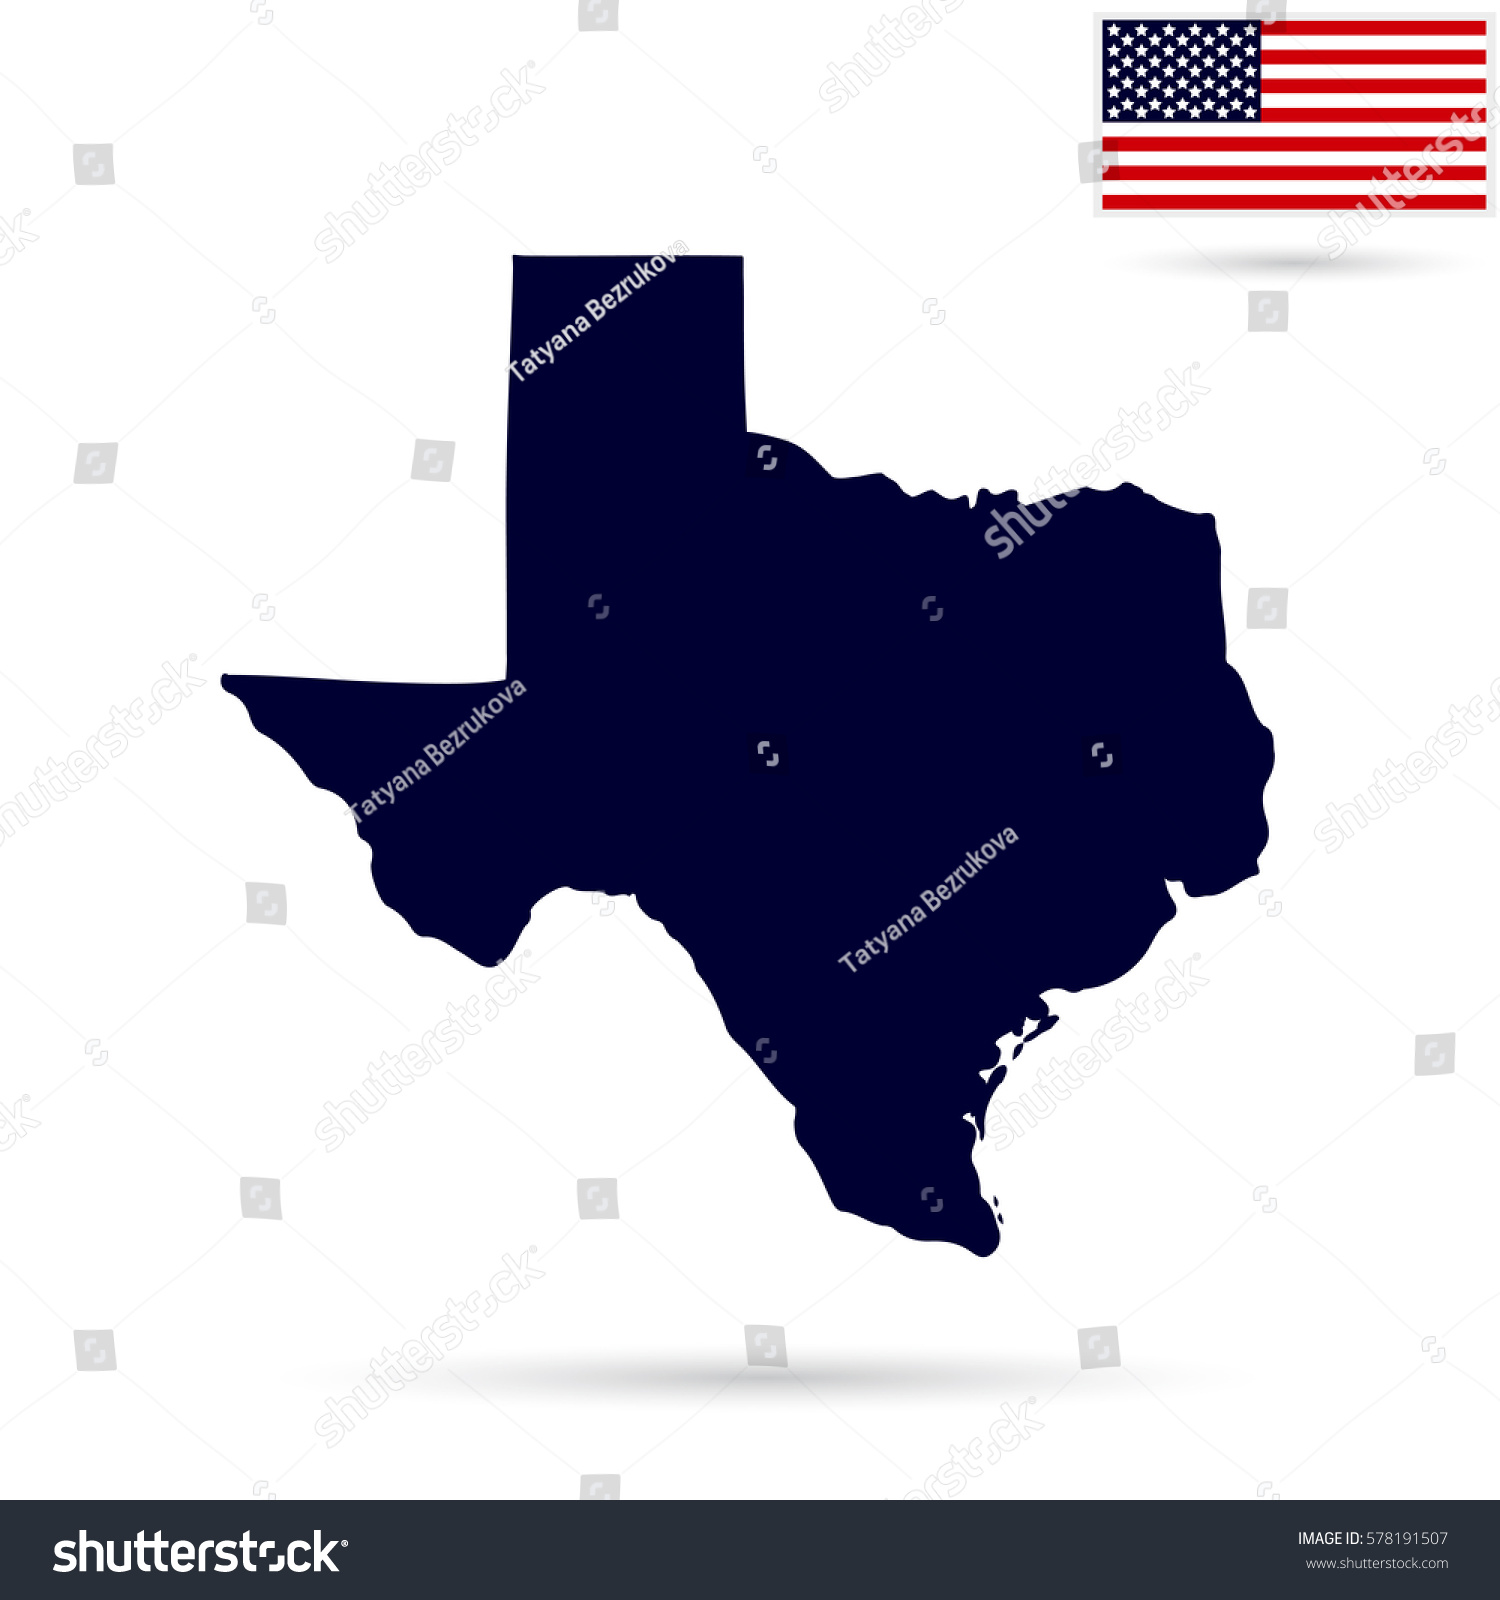 Map Us State Texas On White Stock Vector Shutterstock - Texas on us map